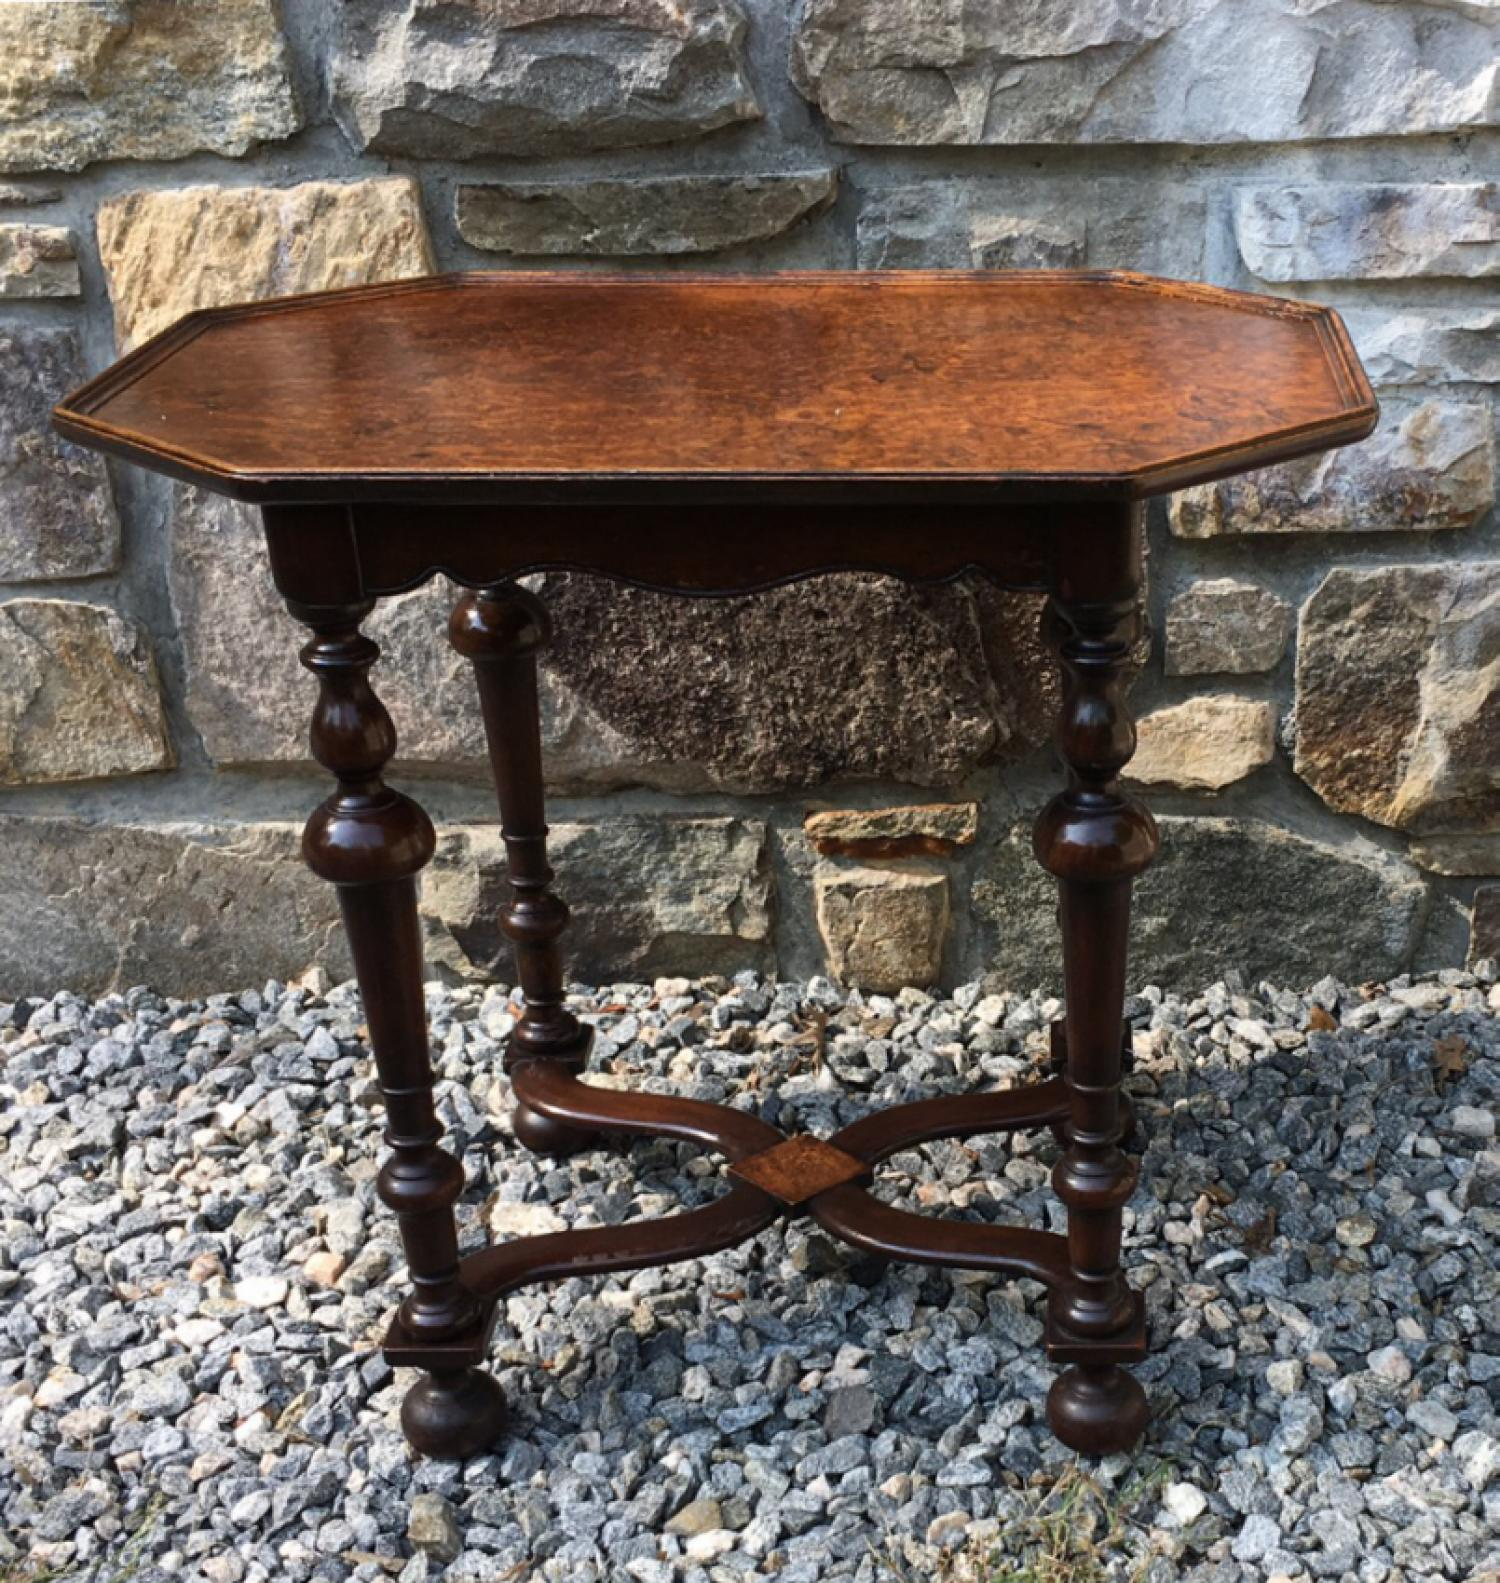 Vintage English tray top coffee table with burl elm top c1900